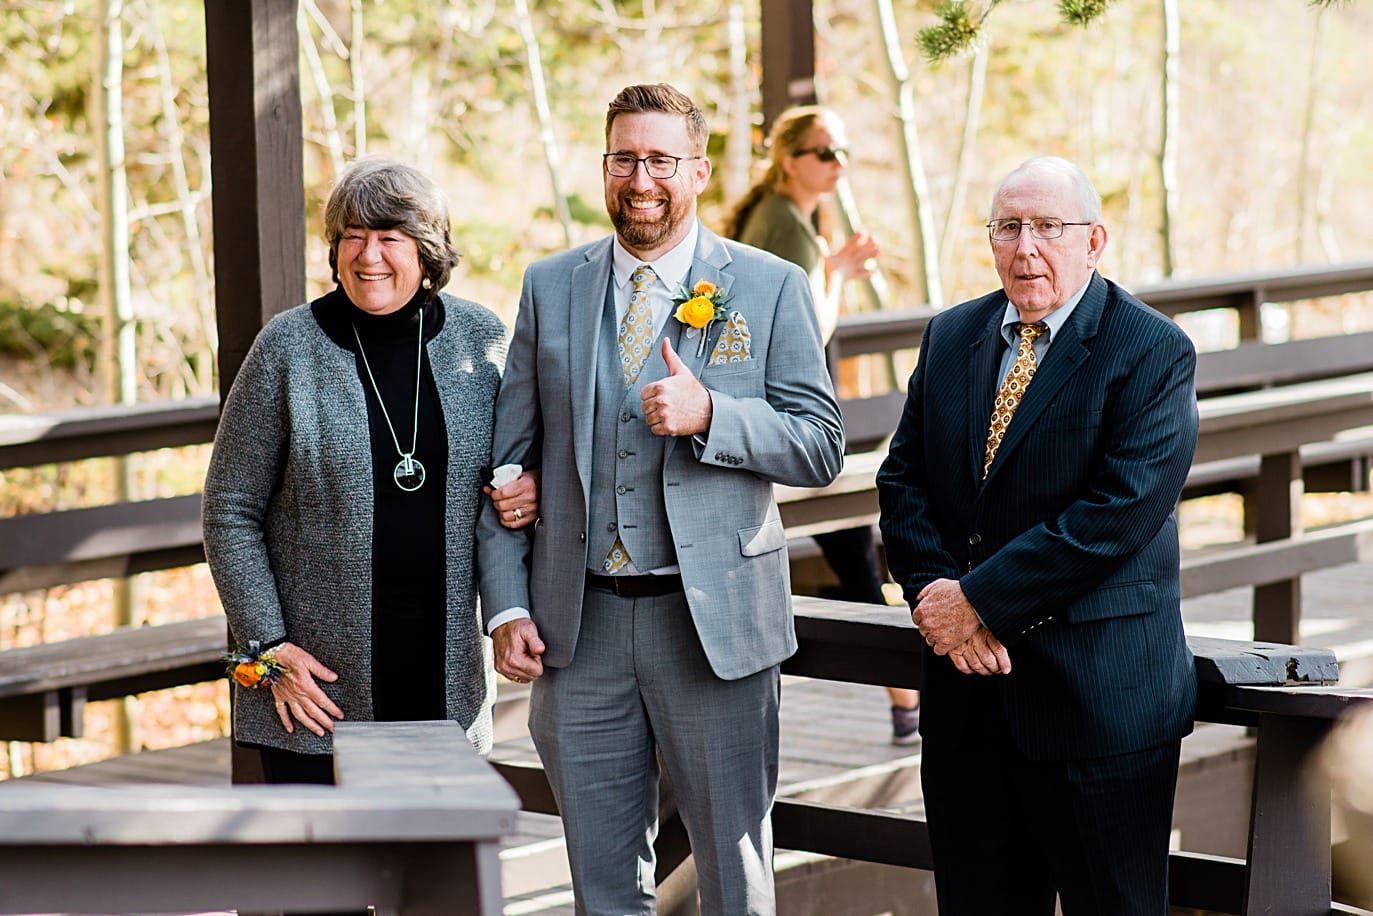 groom gets ready to walk down aisle at Golden Gate Canyon wedding by Golden wedding photographer Jennie Crate